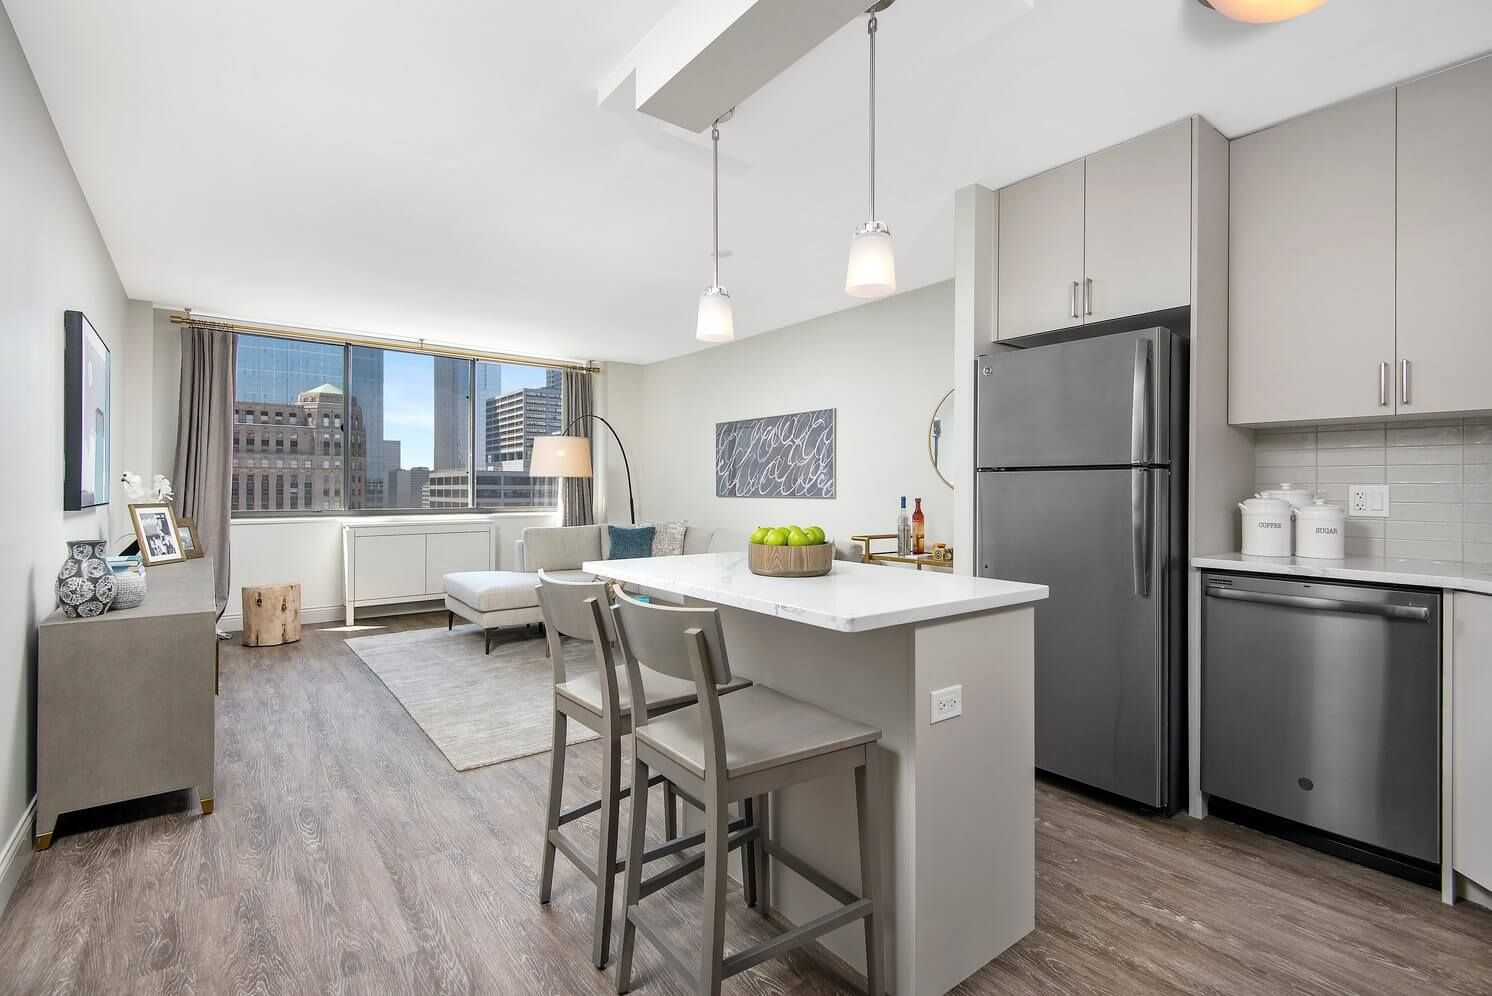 Best apartment rental service in Chicago - River North Park